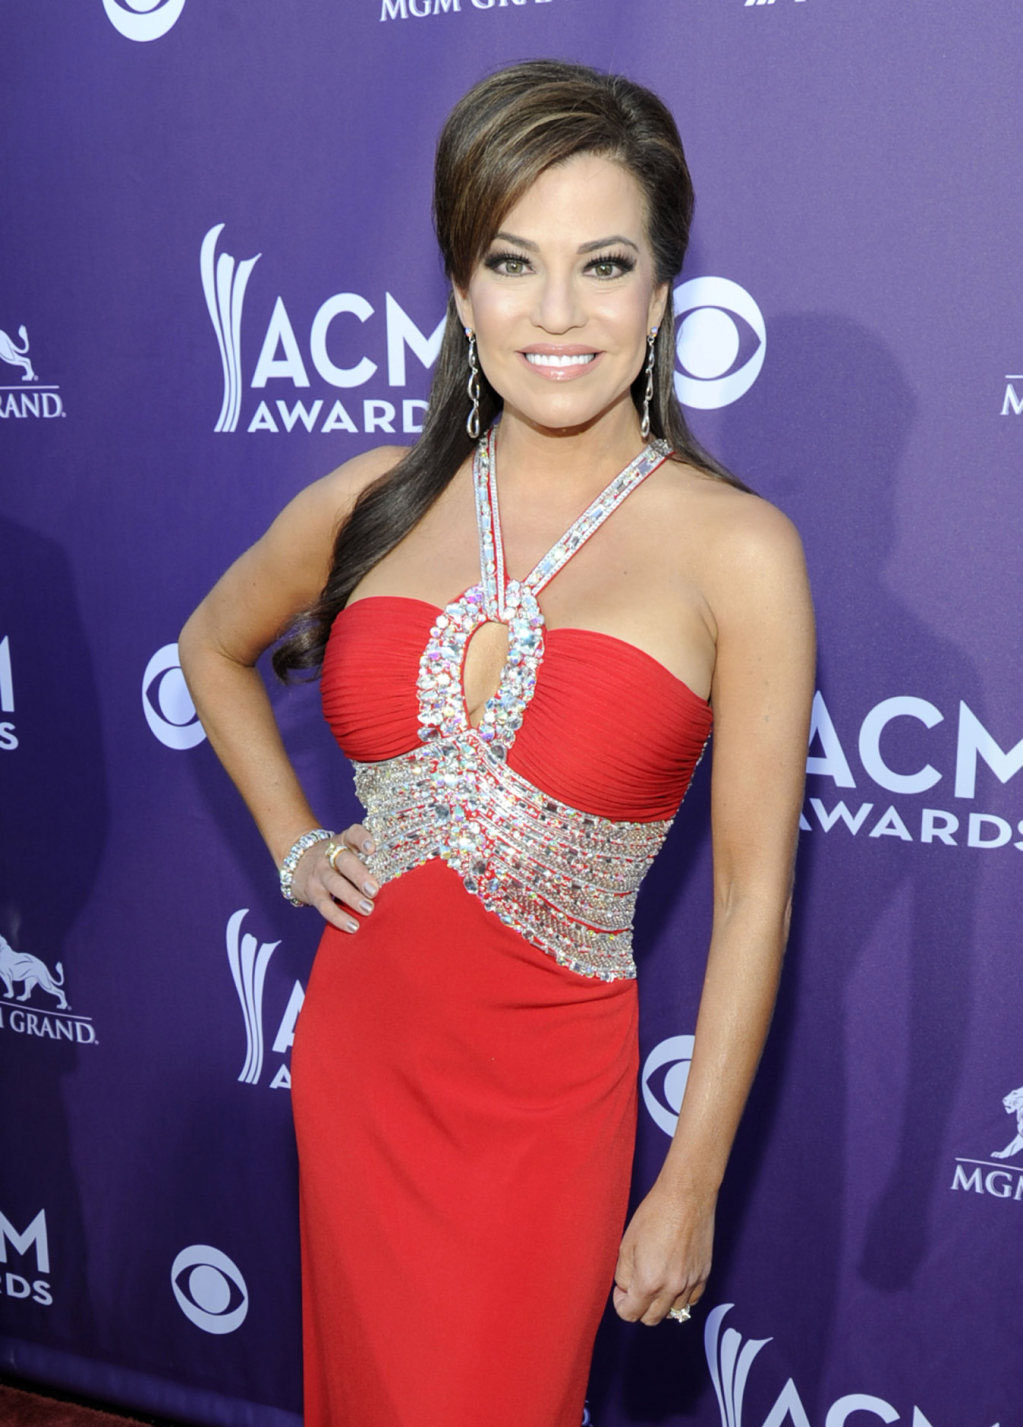 Robin meade pictures